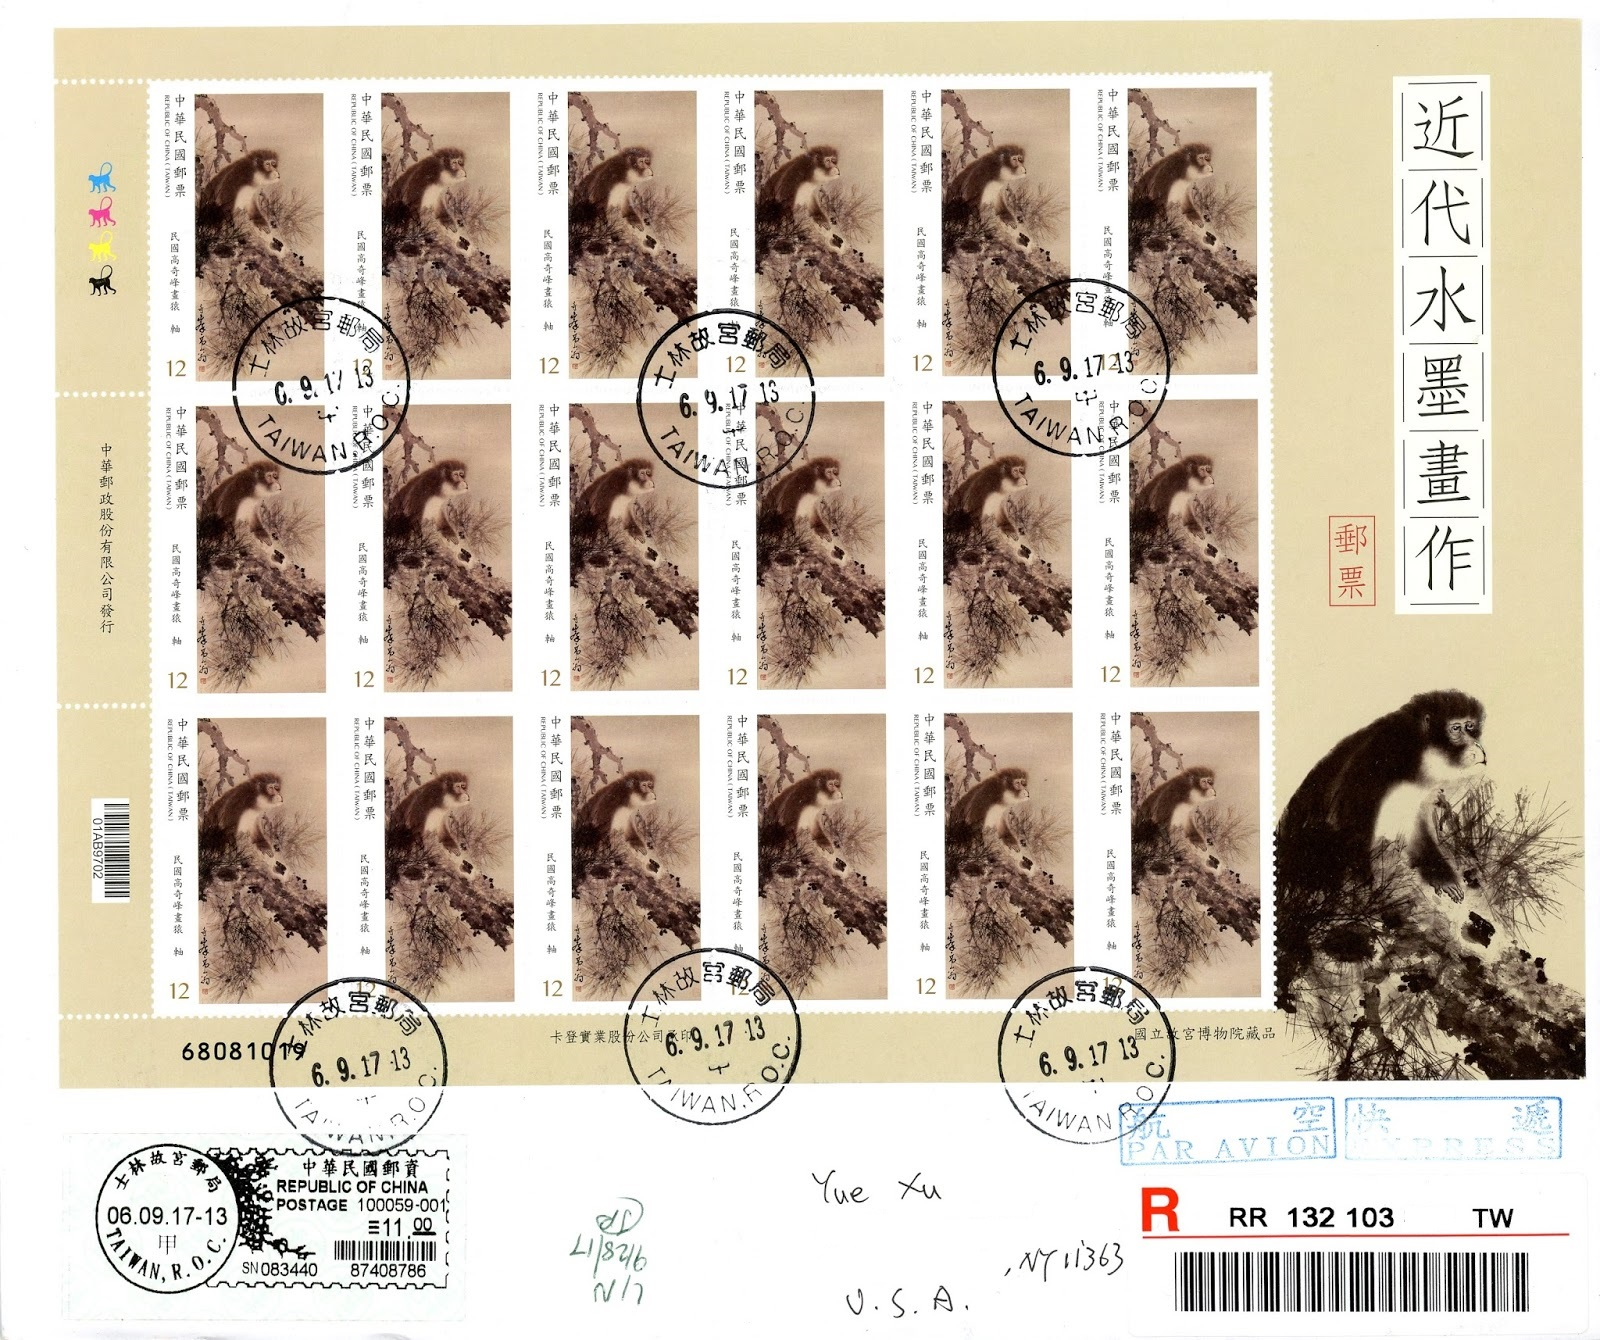 Republic of China (Taiwan) - Michel #4189 (2017) registered cover to New York, NY, bearing full sheet posted posted on the first day of issue from Shilin, a district of Taipei City, where the National Palace Museum is located. Image courtesy of the Art on Cover blog.